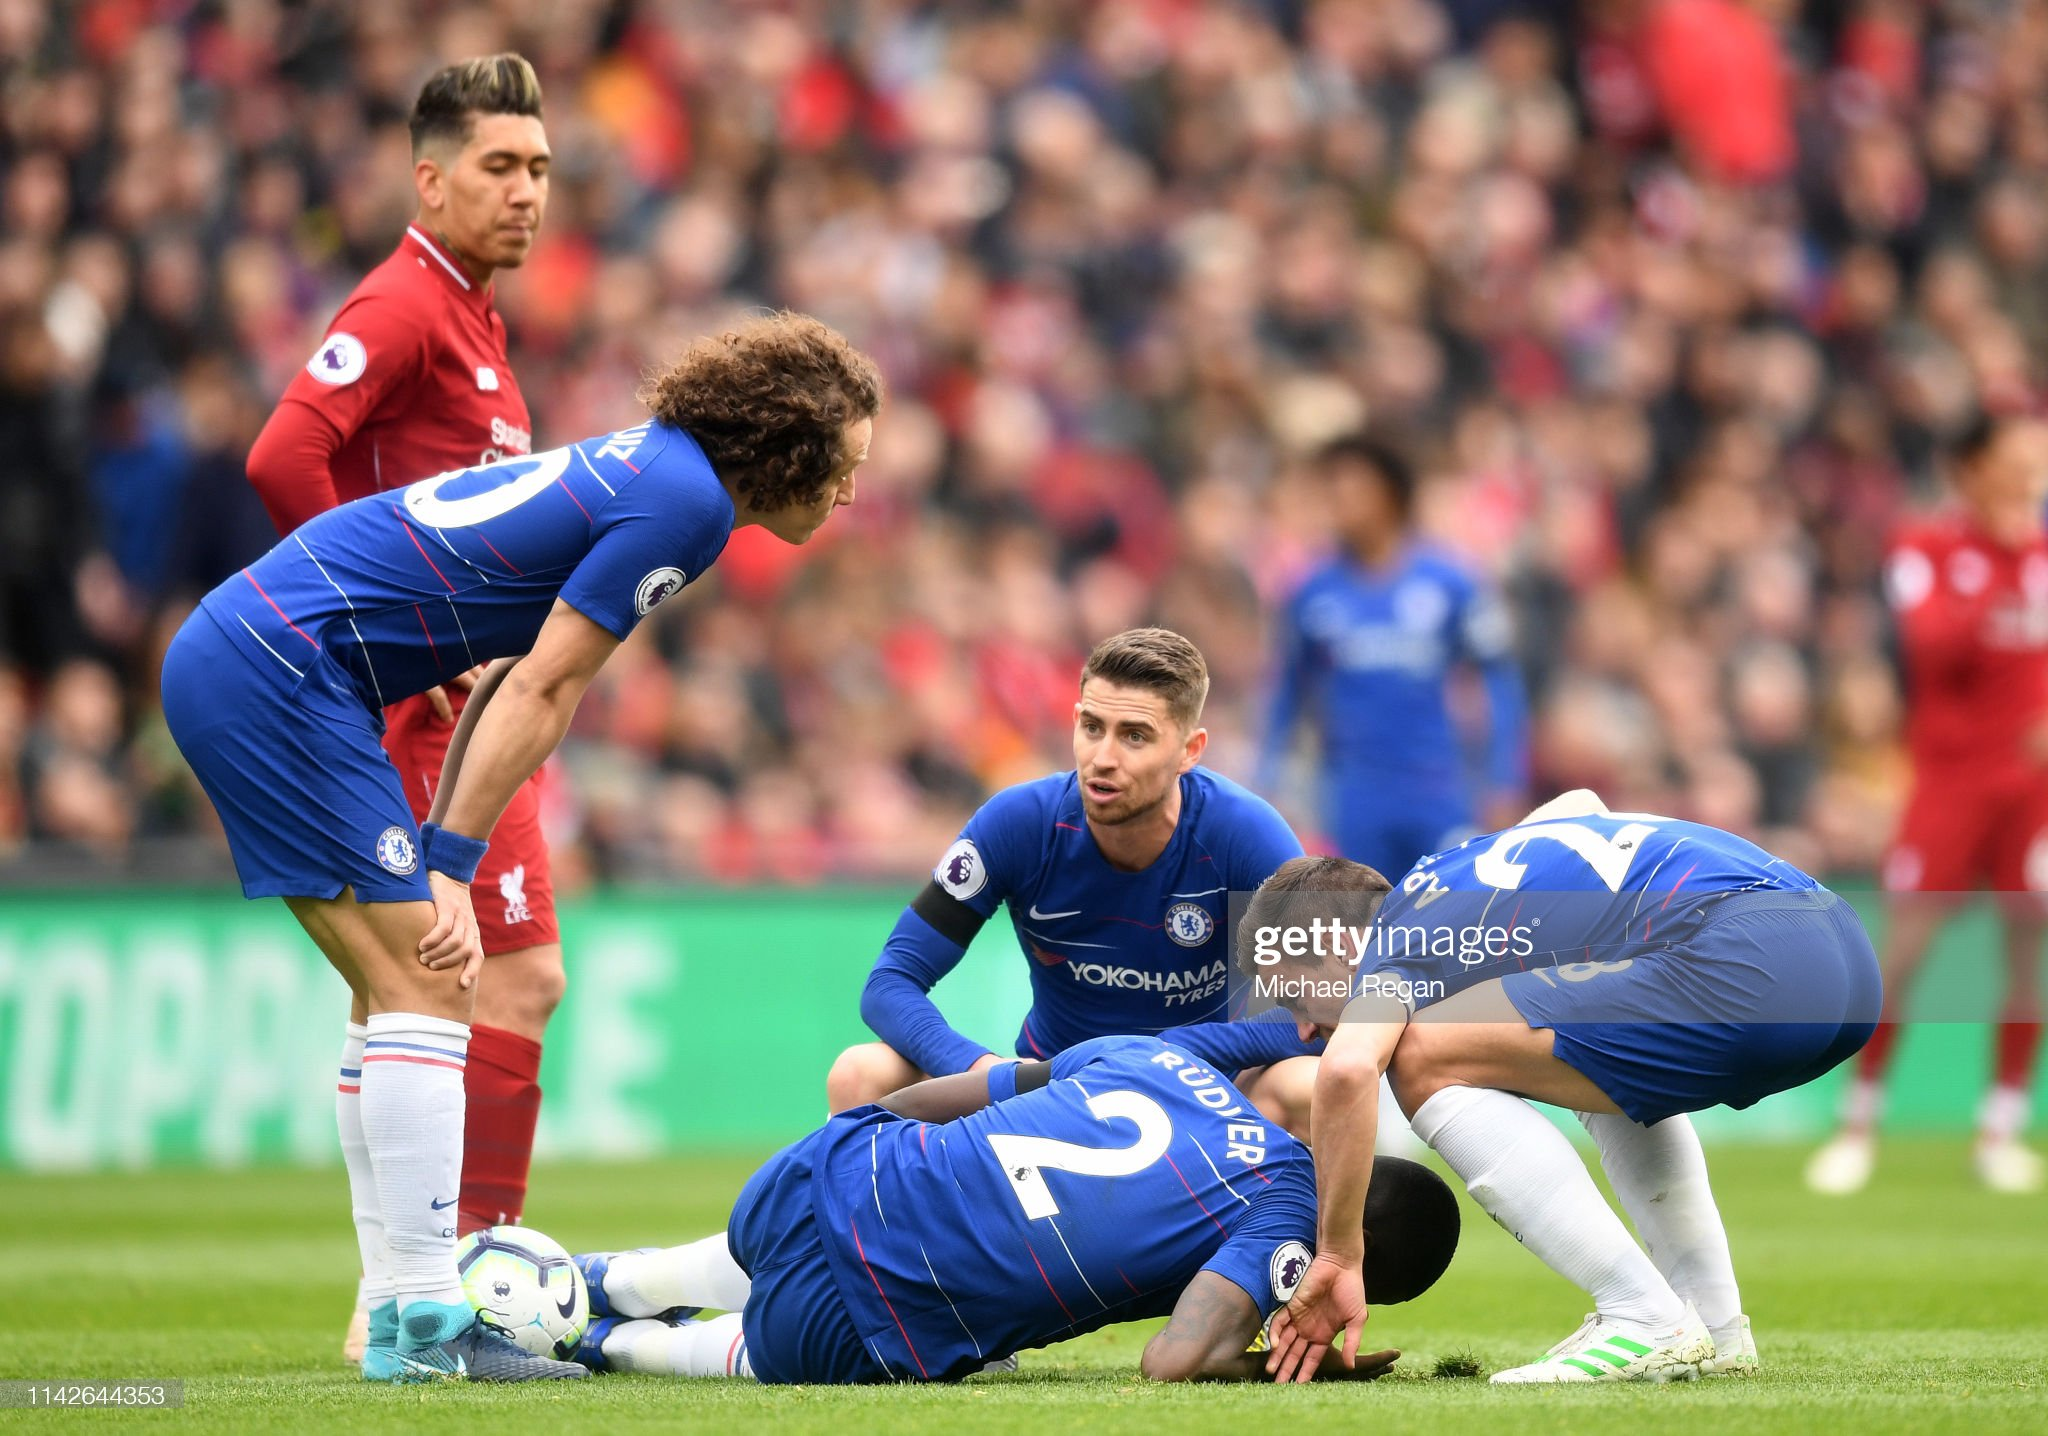 Liverpool FC v Chelsea FC - Premier League : News Photo